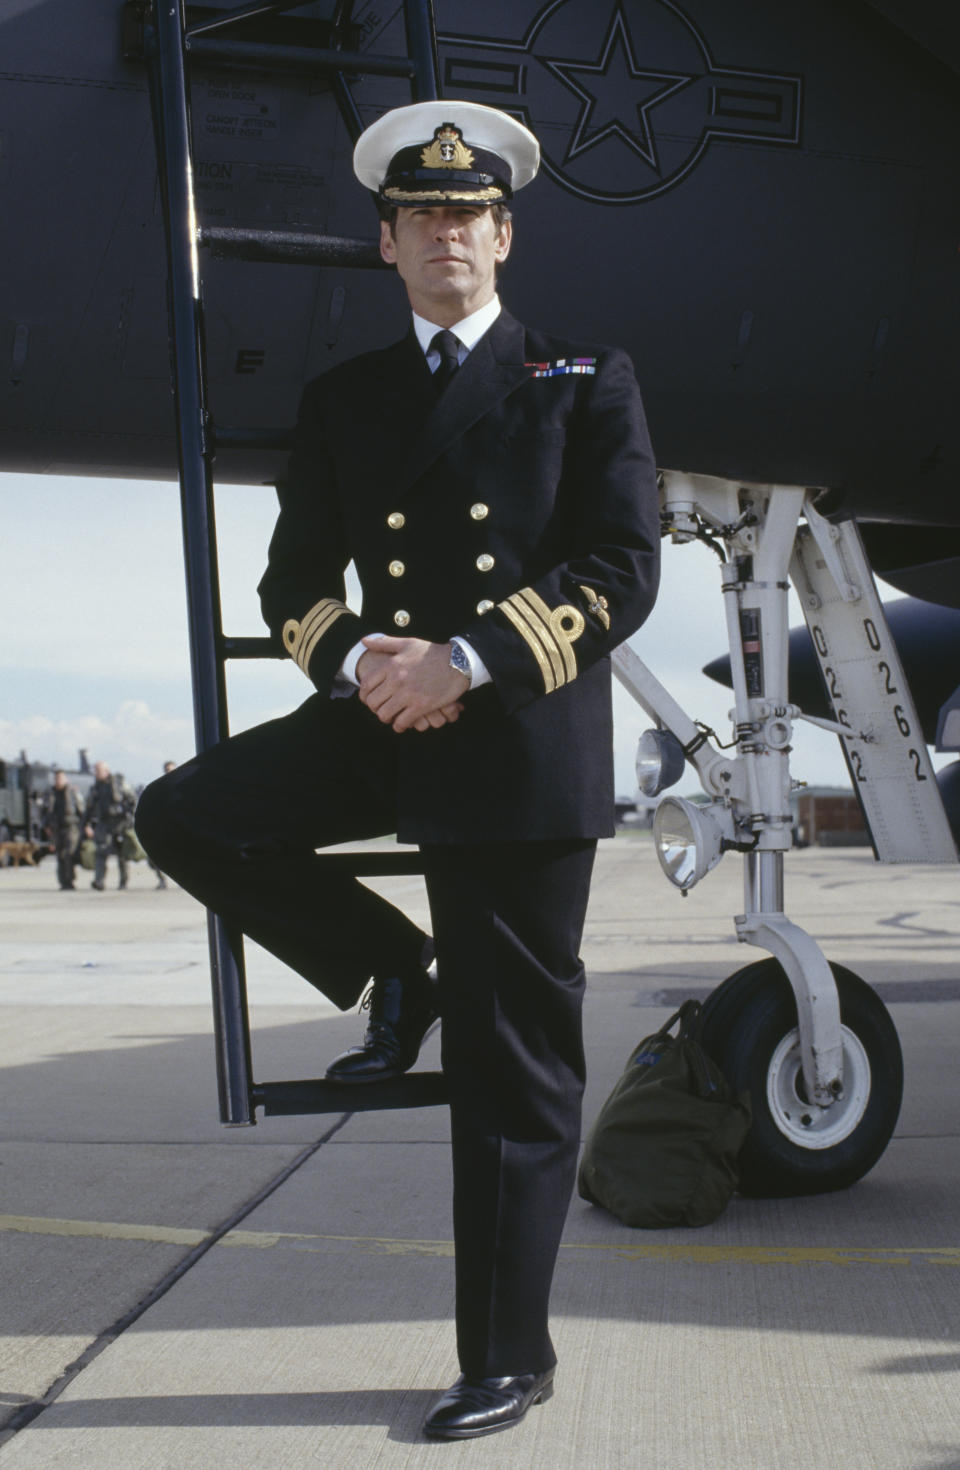 Irish actor Pierce Brosnan as 007 in his naval uniform in the James Bond film 'Tomorrow Never Dies', 1997. (Photo by Keith Hamshere/Getty Images)